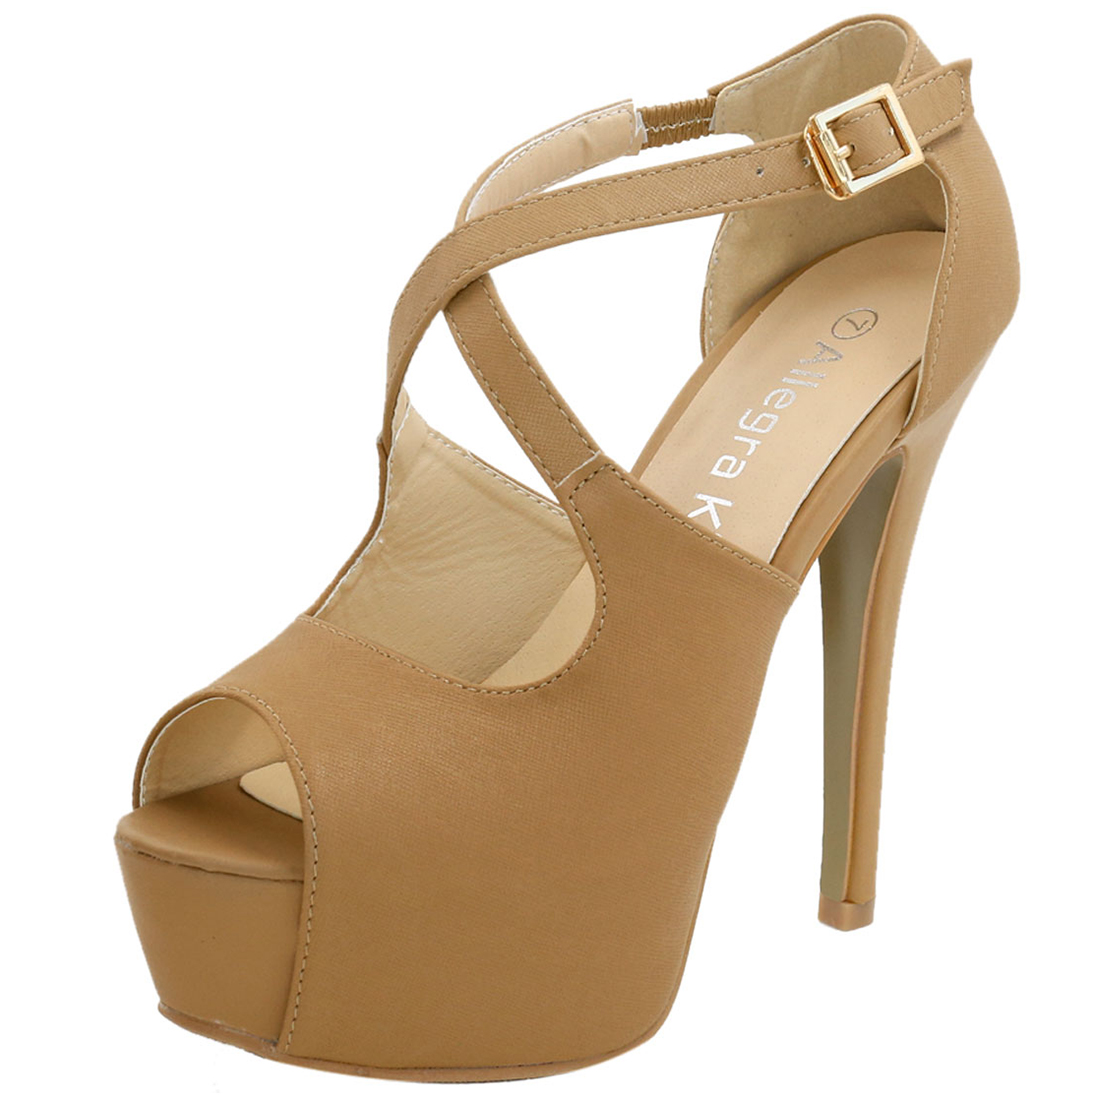 Woman Peep Toe High Heel Crisscross Straps Platform Sandals Tan US 7